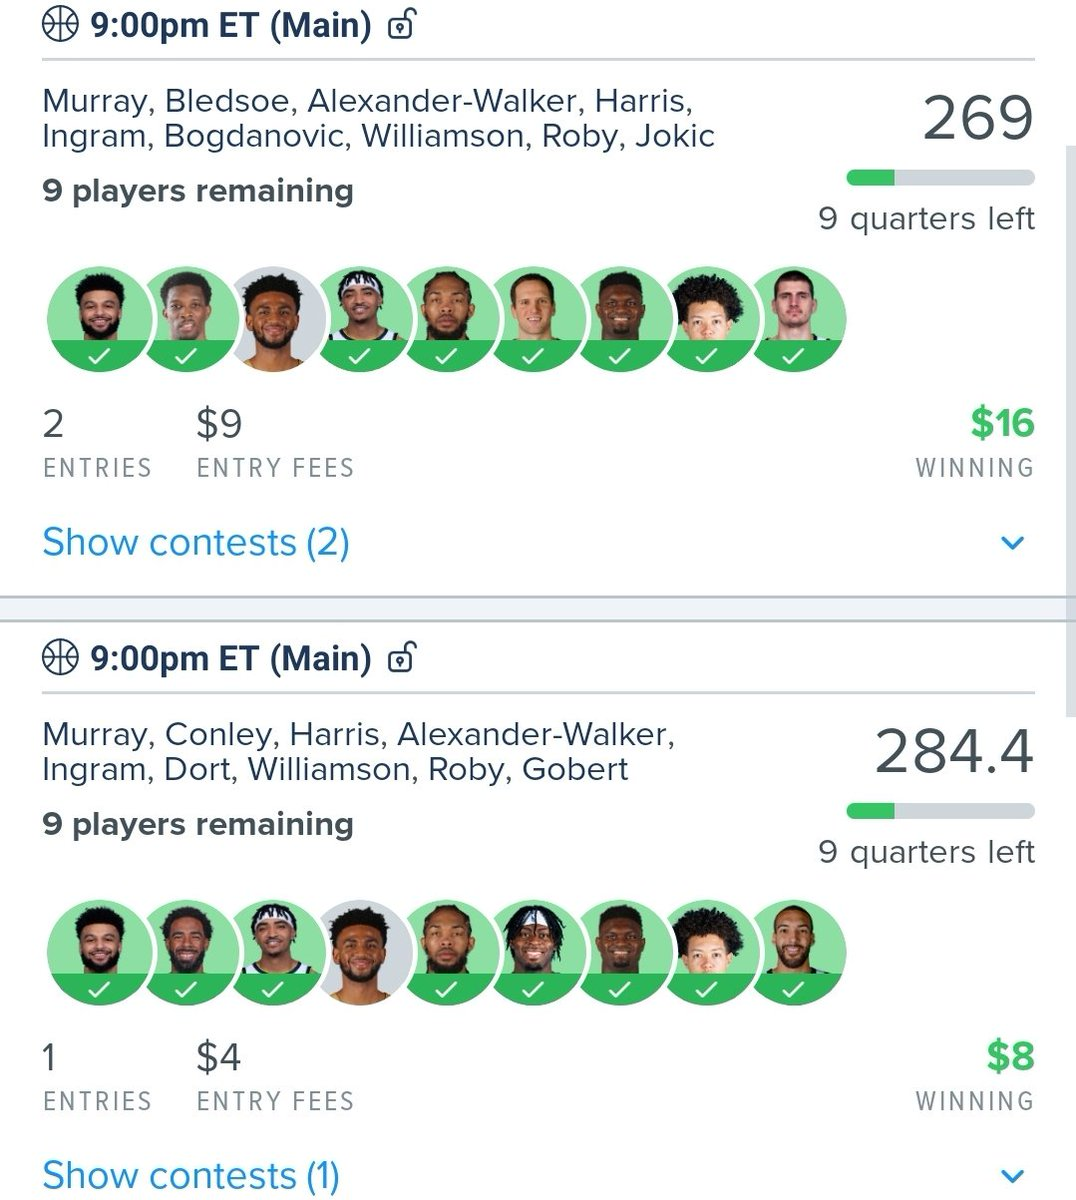 @RotoRadarCEO and @RotoRadarRiemer are just insanely on fire. WE ARE STREAKING!!!!!! What's cooler is that I have .24 cents in the 4$ GPP. Won them with....yep @RotoRadarCEO and @RotoRadarRiemer lineups. @jaredrblock drops dimes in the podcast and #30tolock as well. #RotoRadarNBA